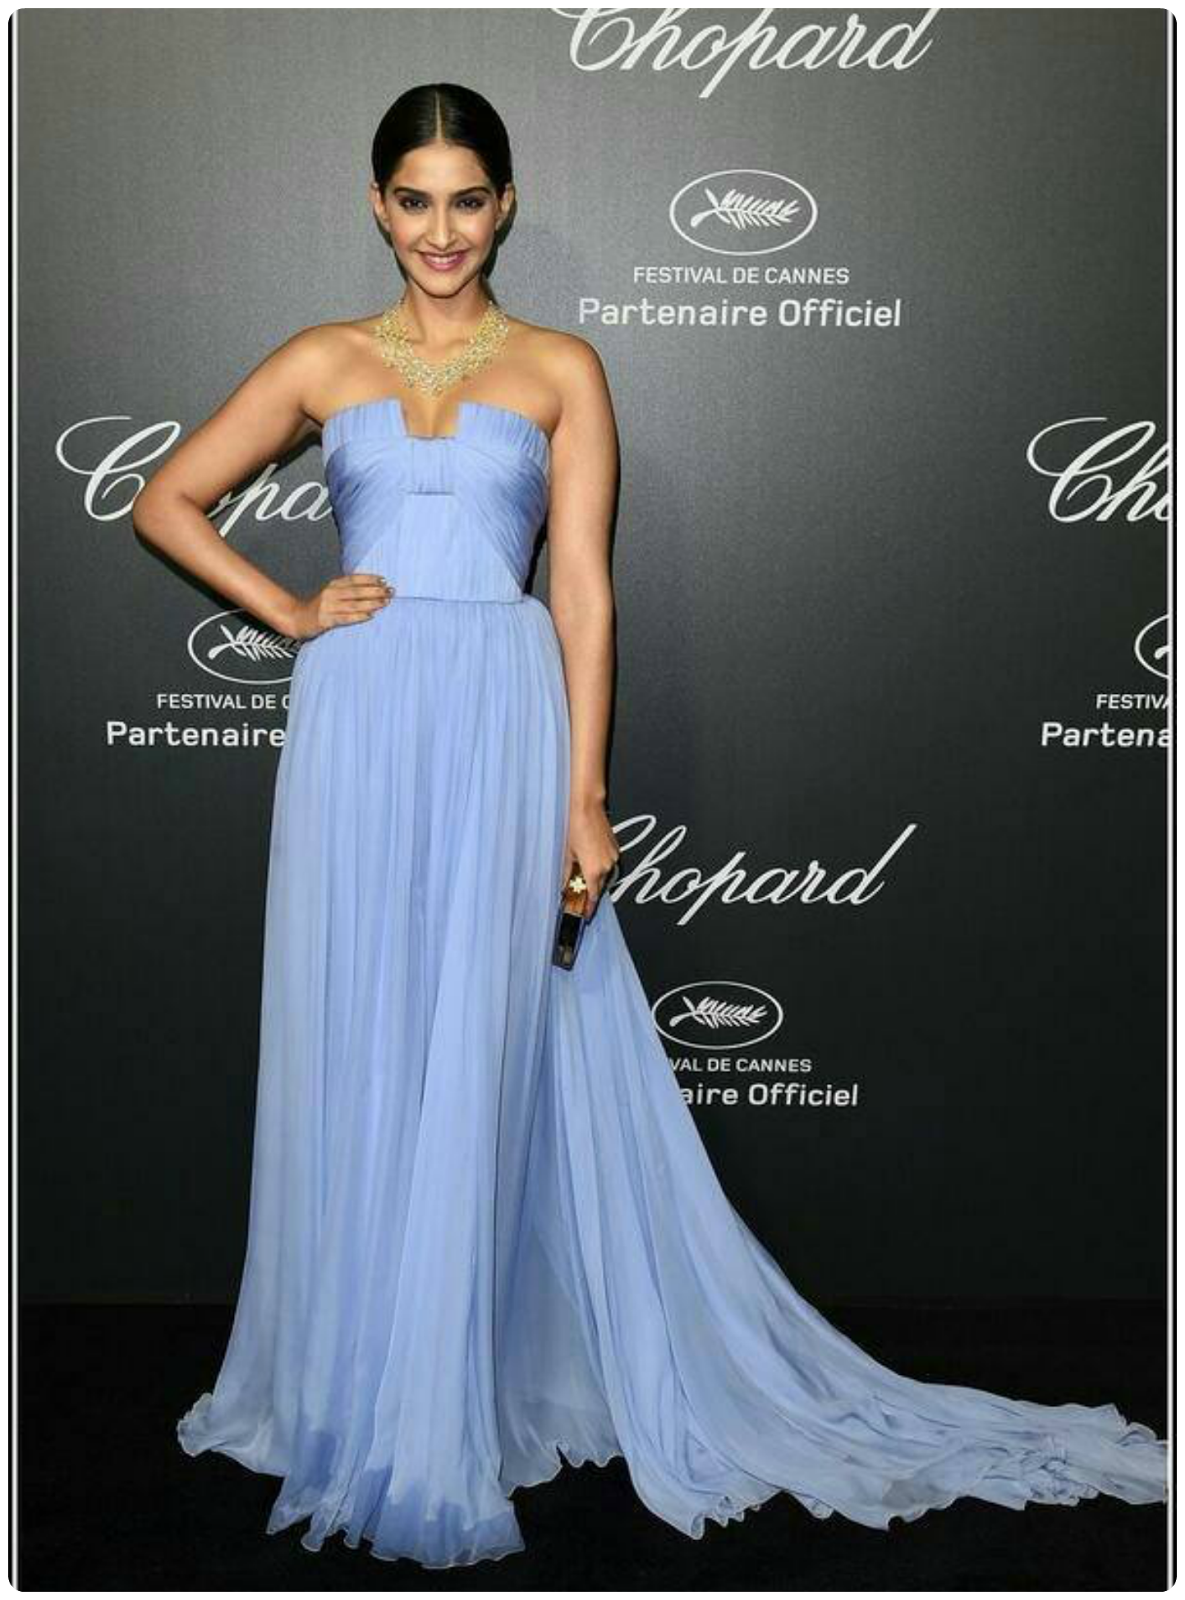 Sonam kapoor at chopart event cannes 2014 in elie saab